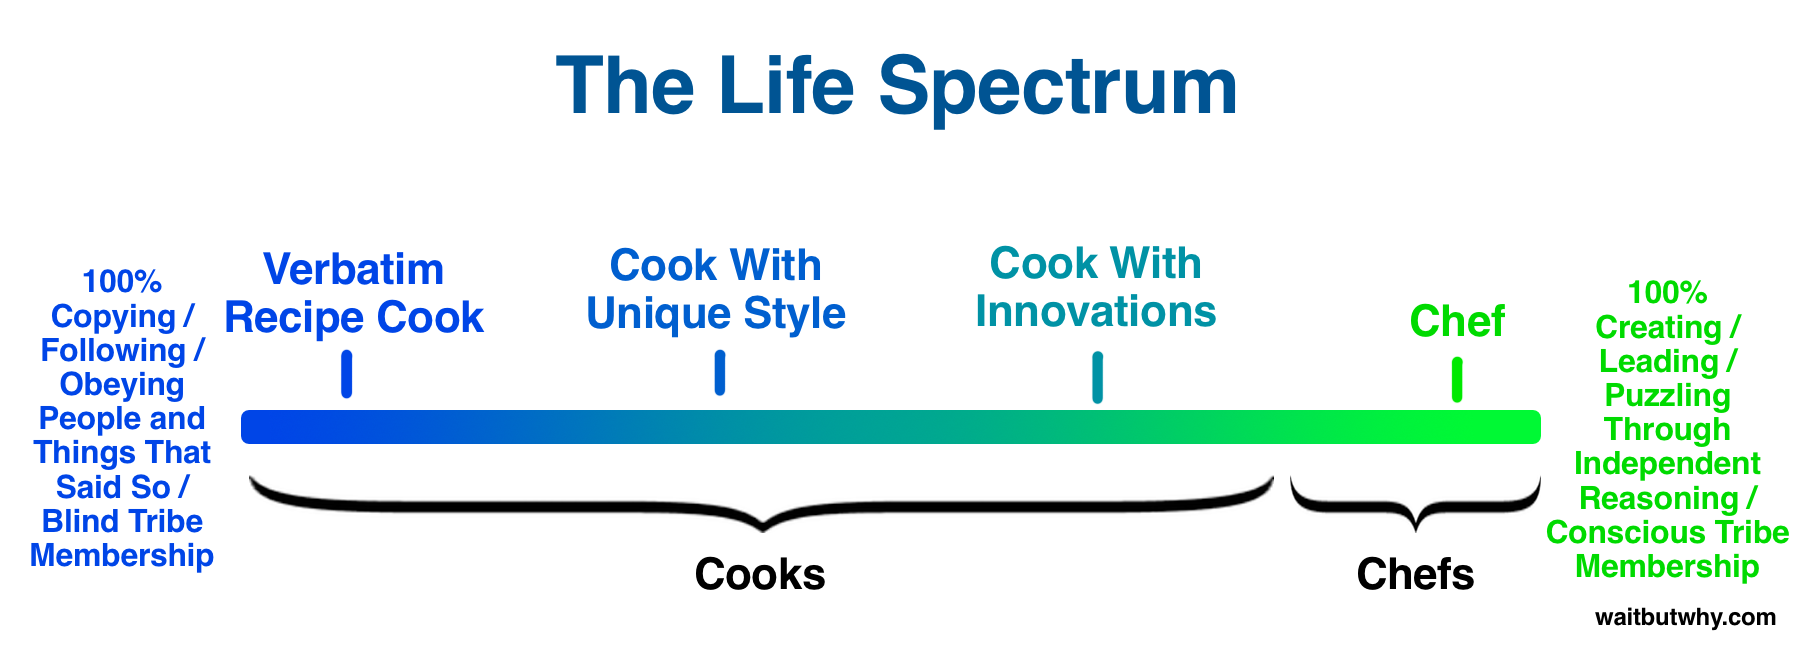 Chef-Cook-Life-Spectrum3